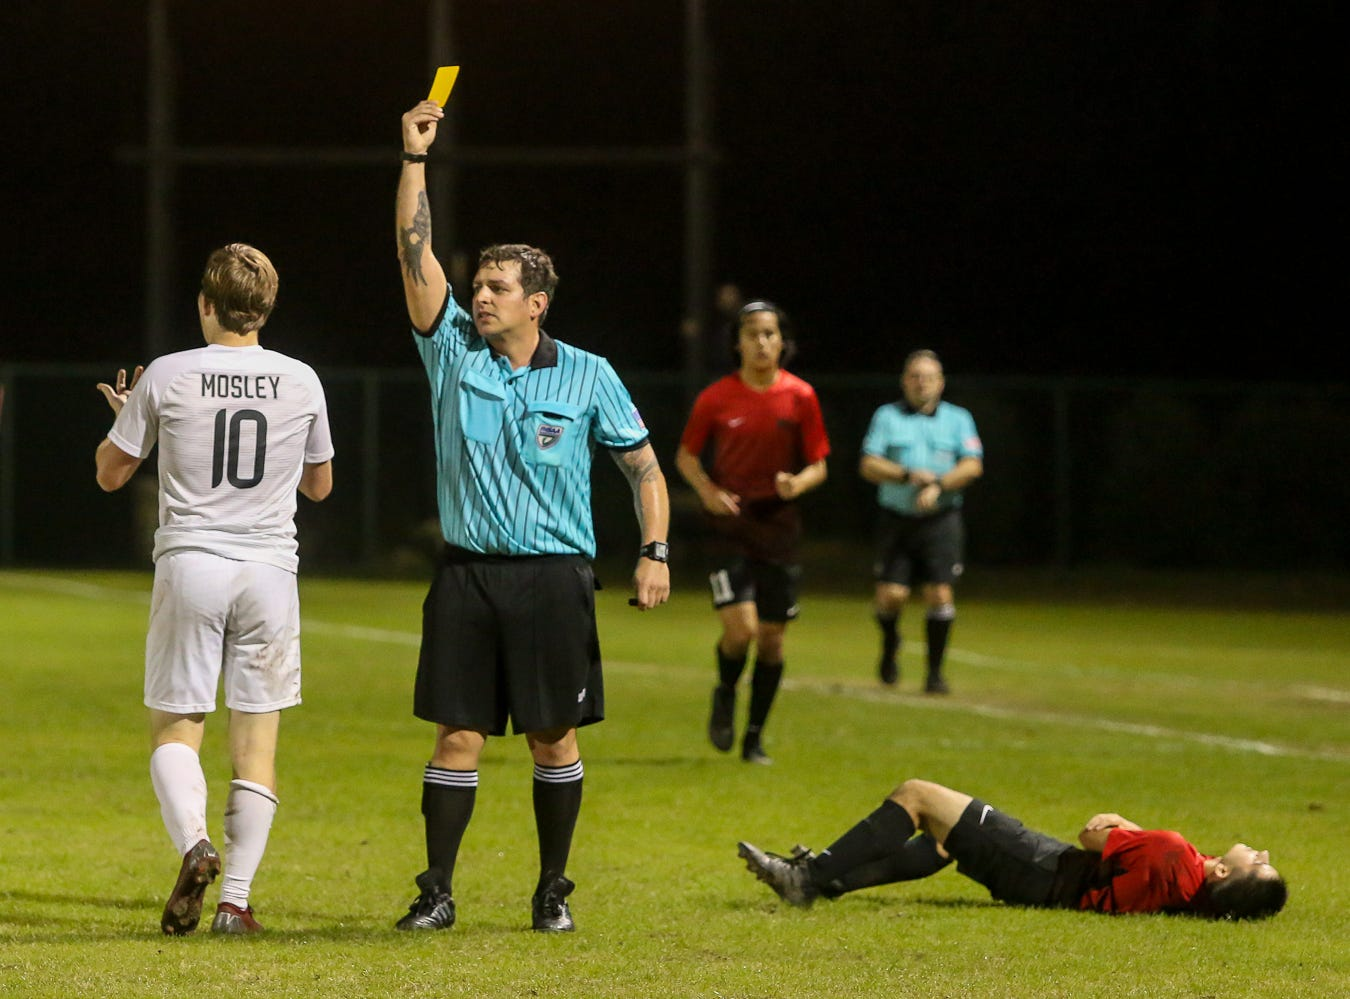 Mosley's Austin Priemer (10) is given a yellow card after tripping up West Florida's Justin Wamsley (17) near the sideline in the Region 1-3A quarterfinal game at Ashton Brosnaham Park on Wednesday, February 6, 2019. Mosley beat West Florida 2-1 and advances to the next round.